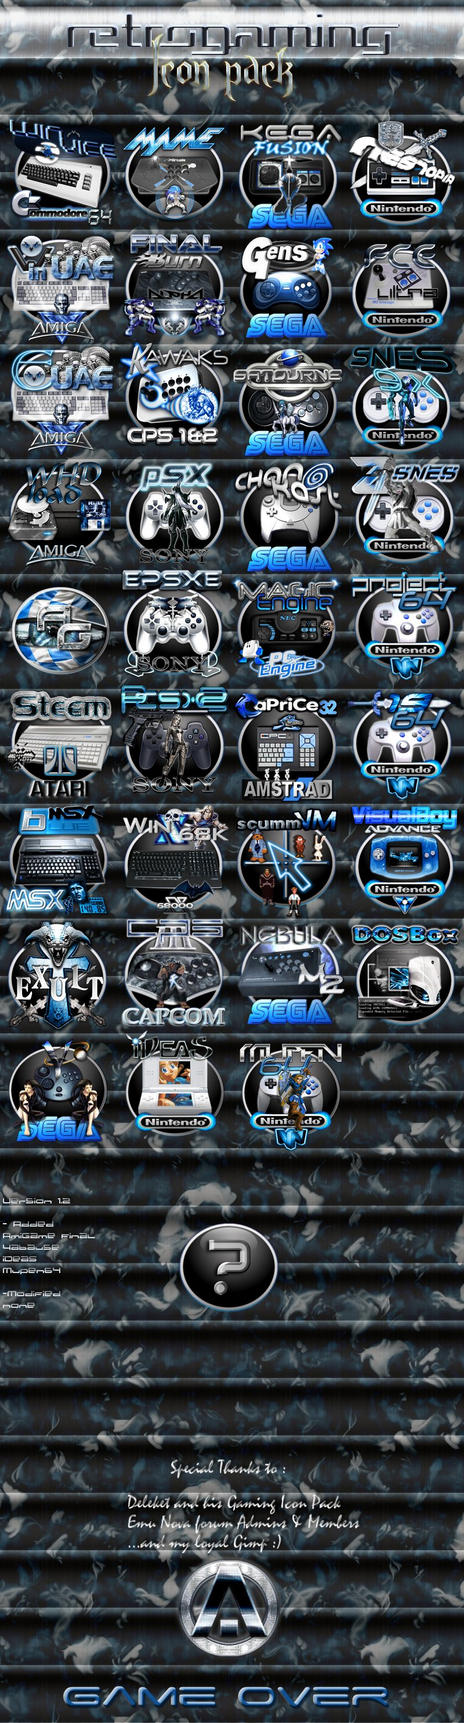 Retrogaming Icon Pack (old)(2008) by Anarkhya